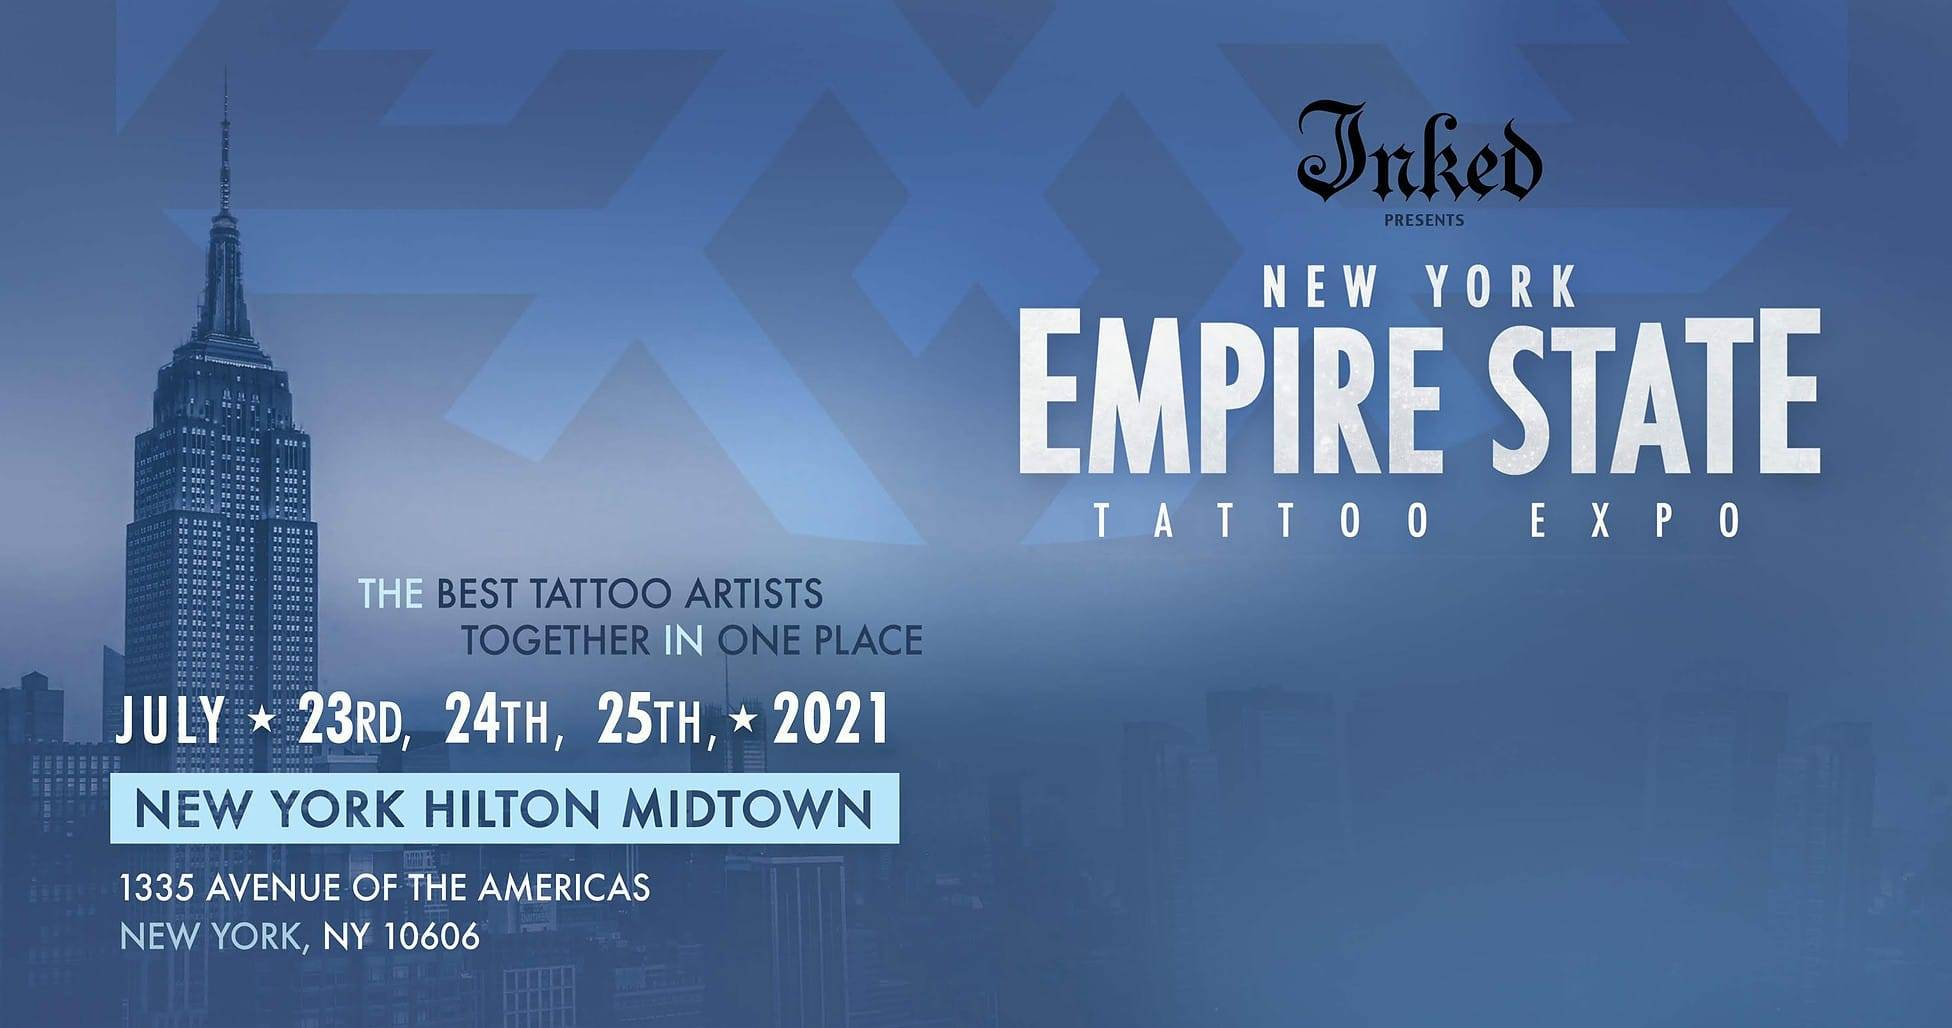 Empire State tattoo expo banner